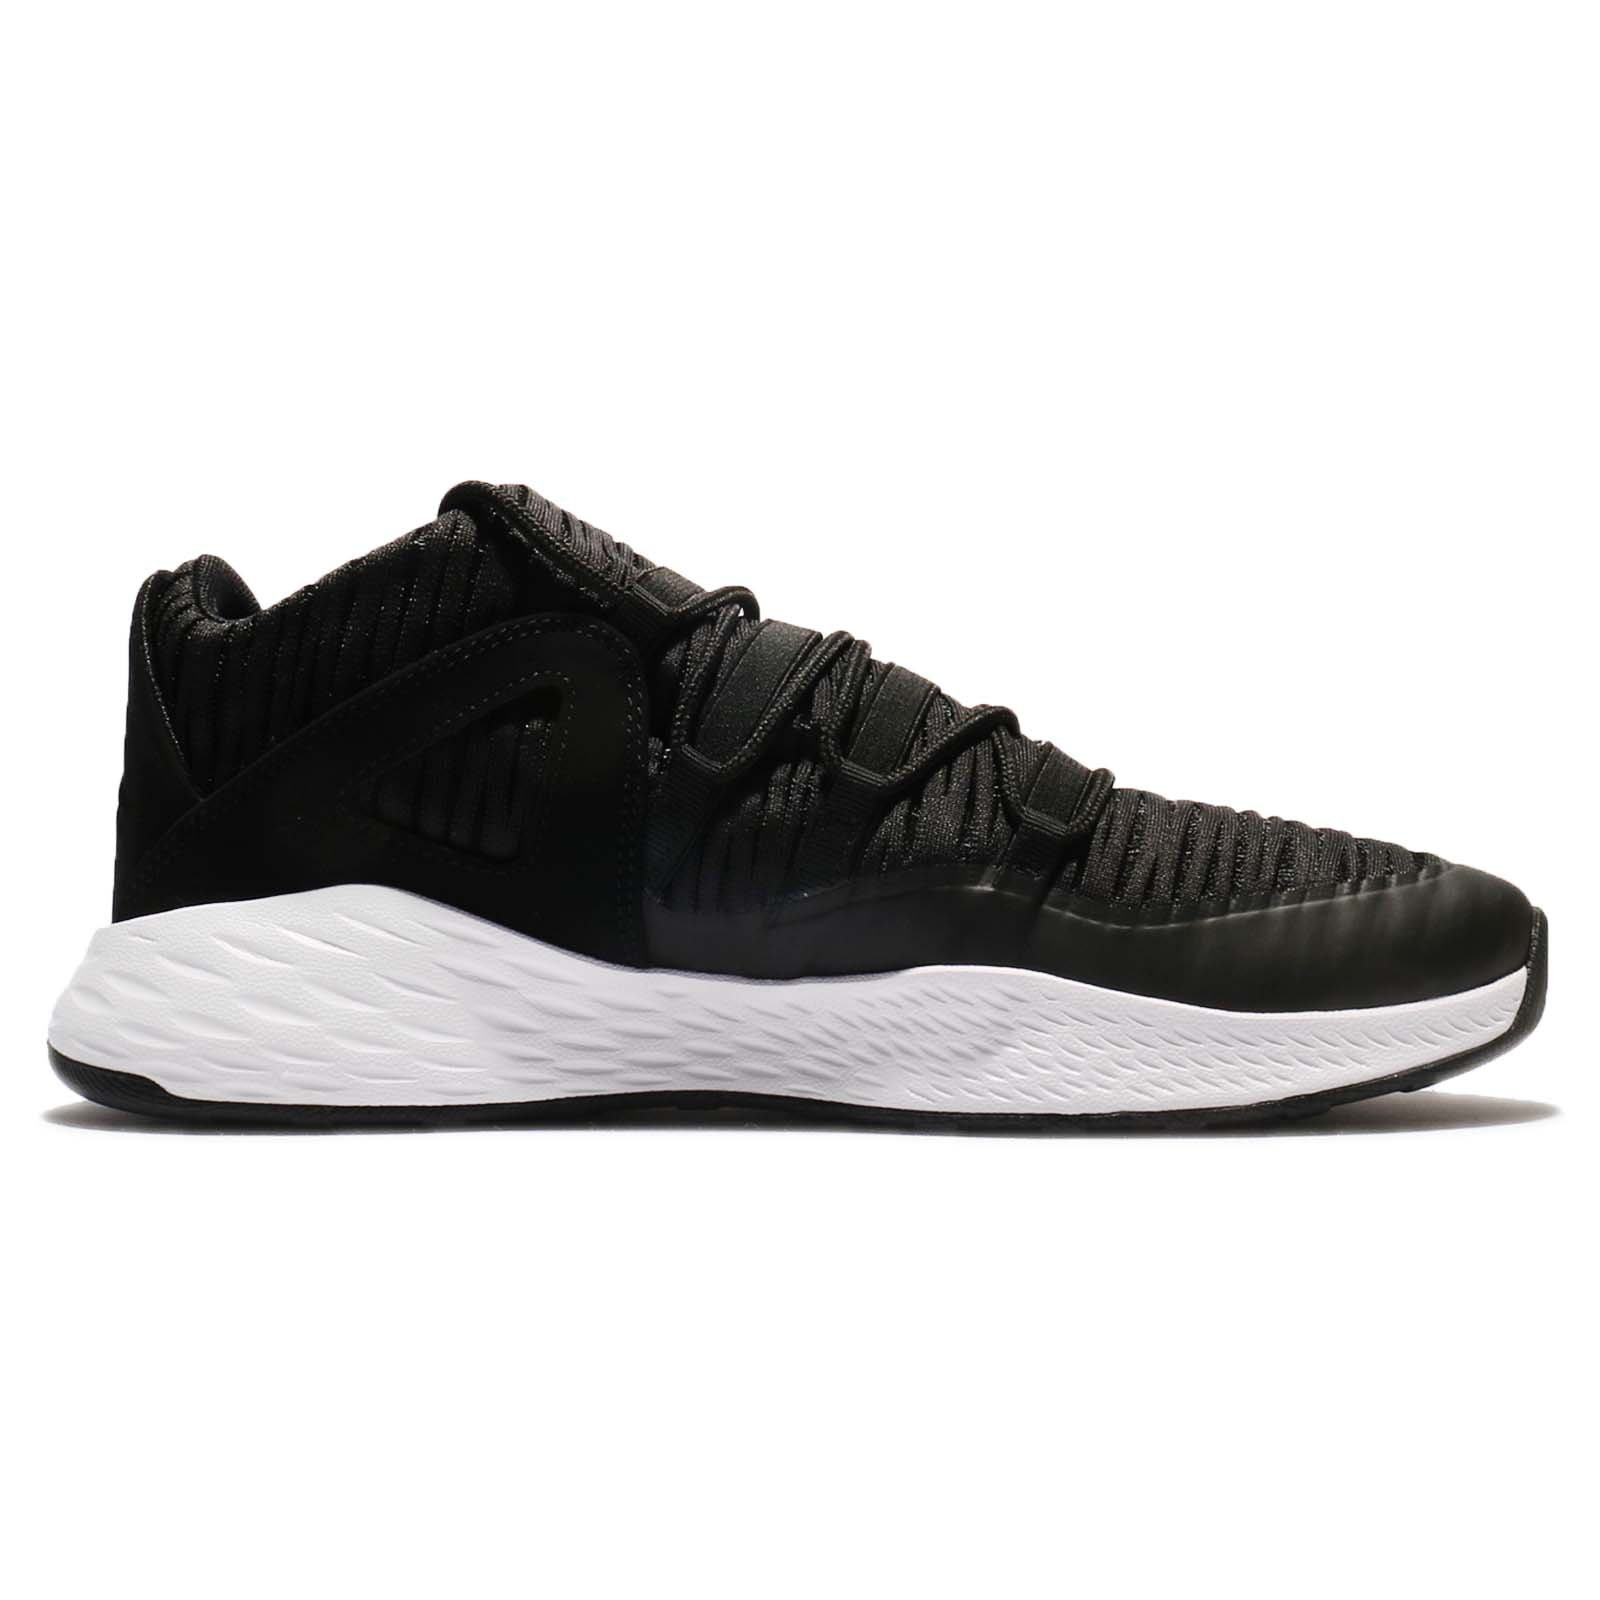 Nike 919724-011 : Jordan Men's Formula 23 Low Sneaker Black/White (9.5 D(M) US)